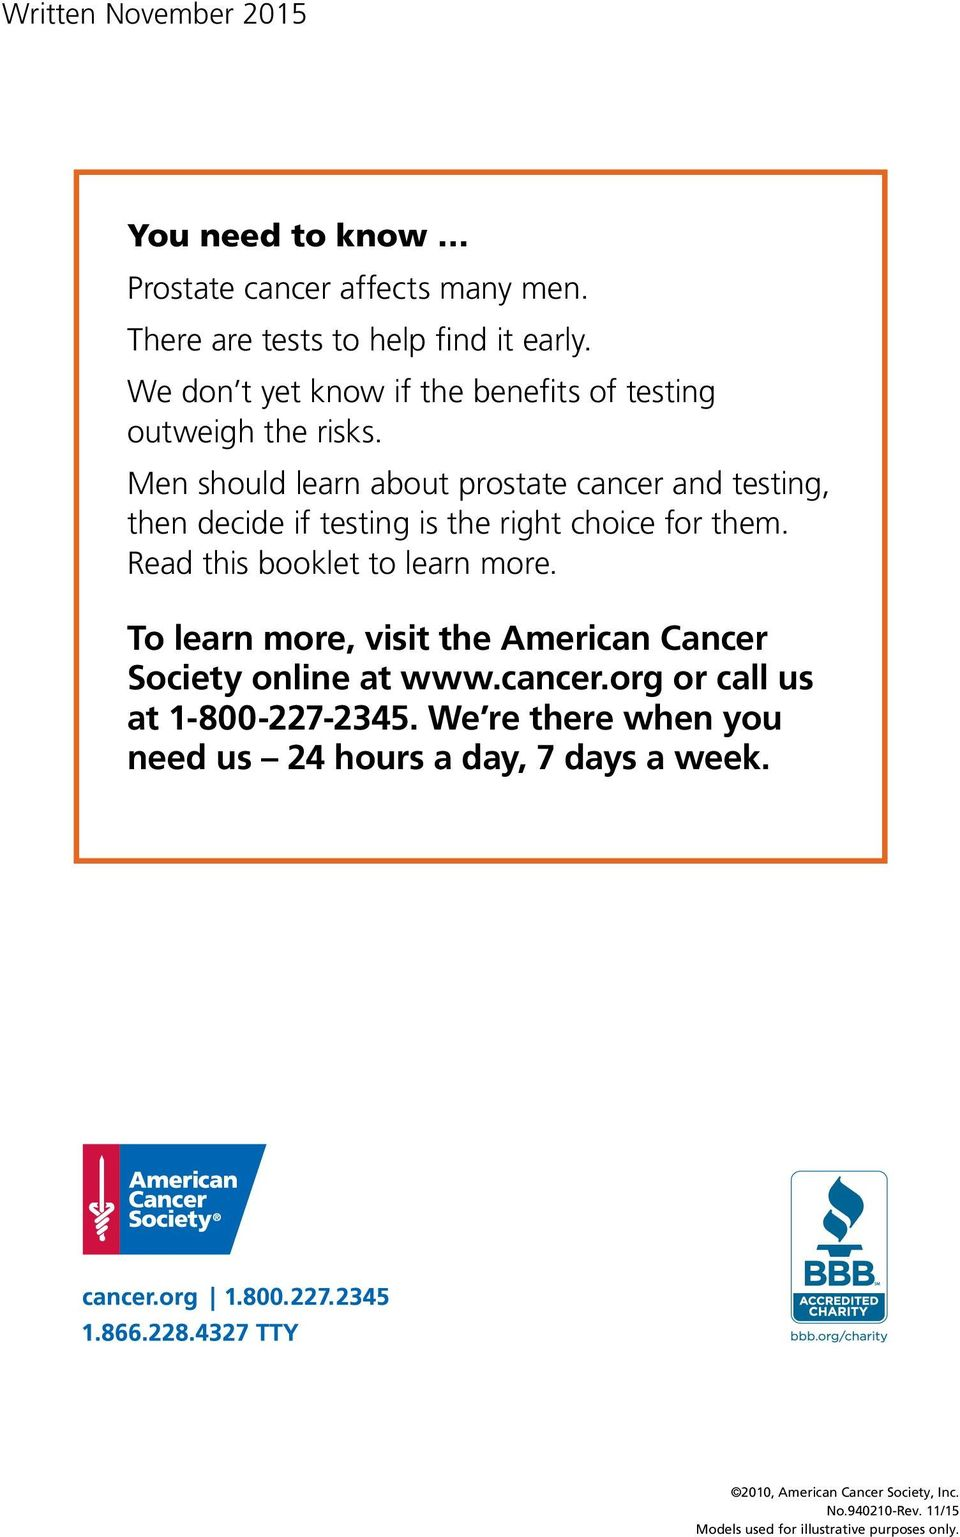 Men should learn about prostate cancer and testing, then decide if testing is the right choice for them. Read this booklet to learn more.